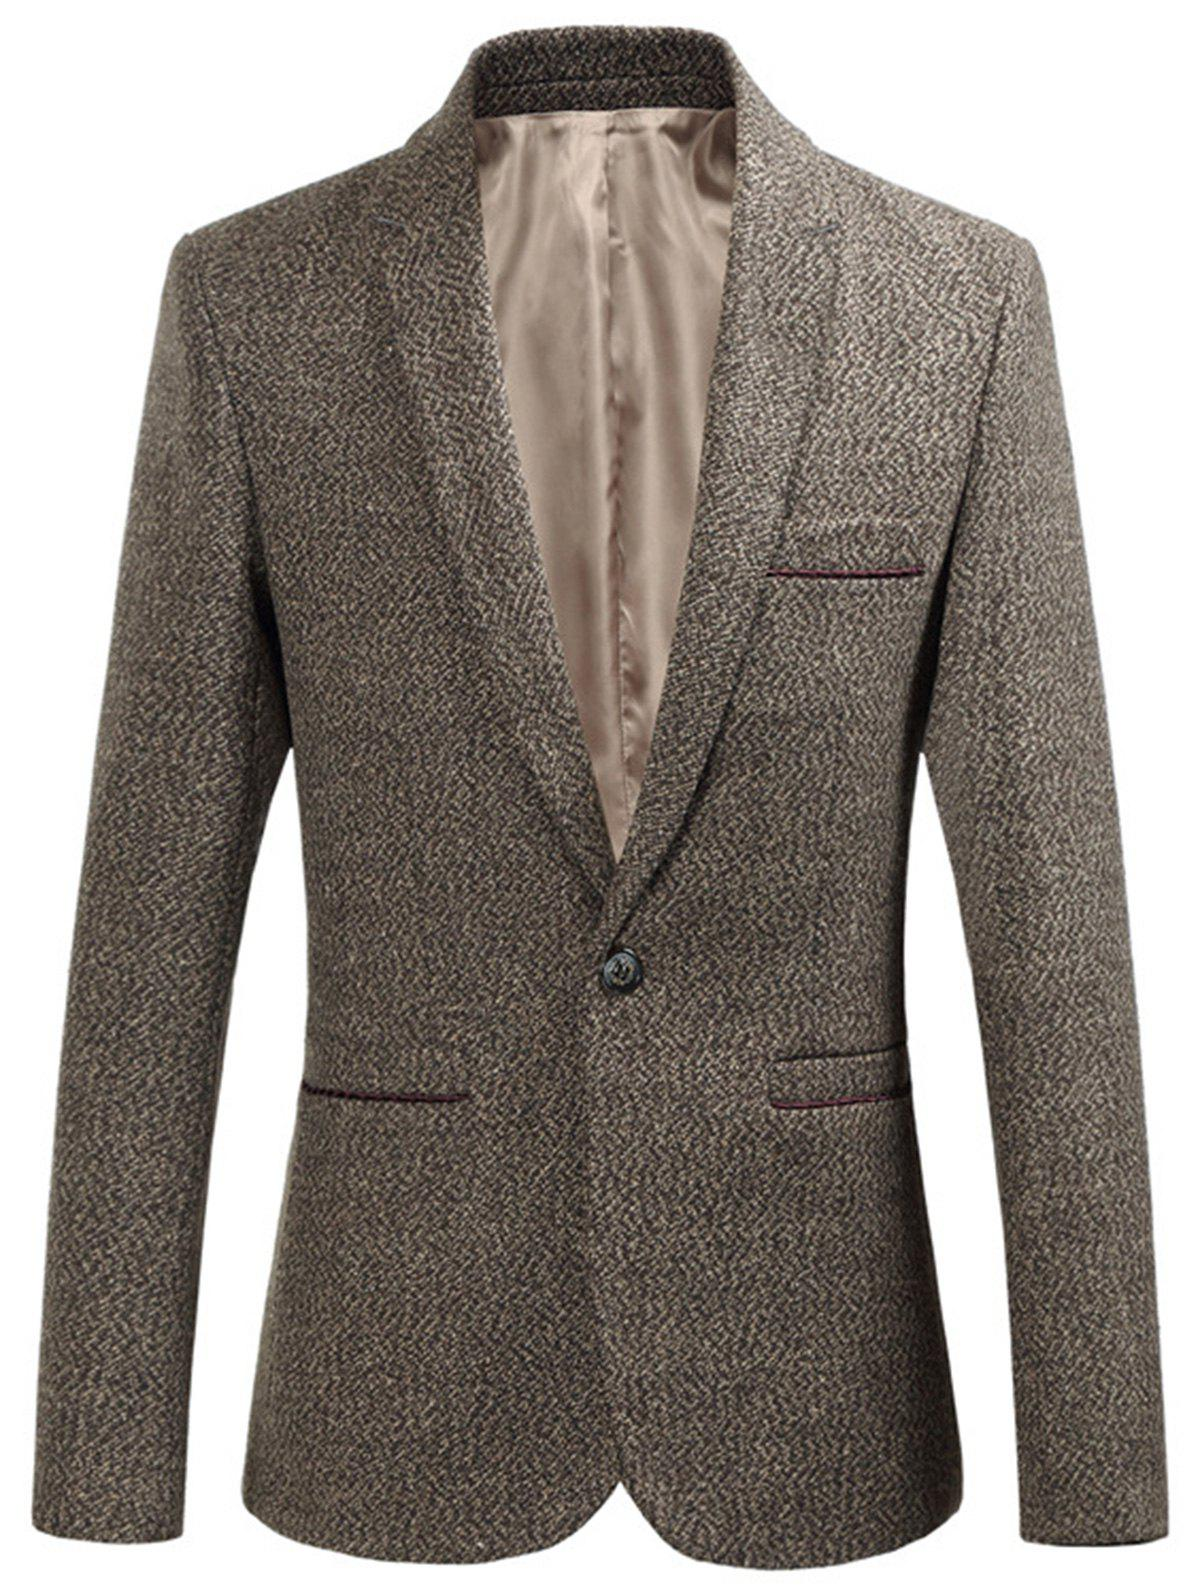 Fancy One Button Edging Woolen Blazer